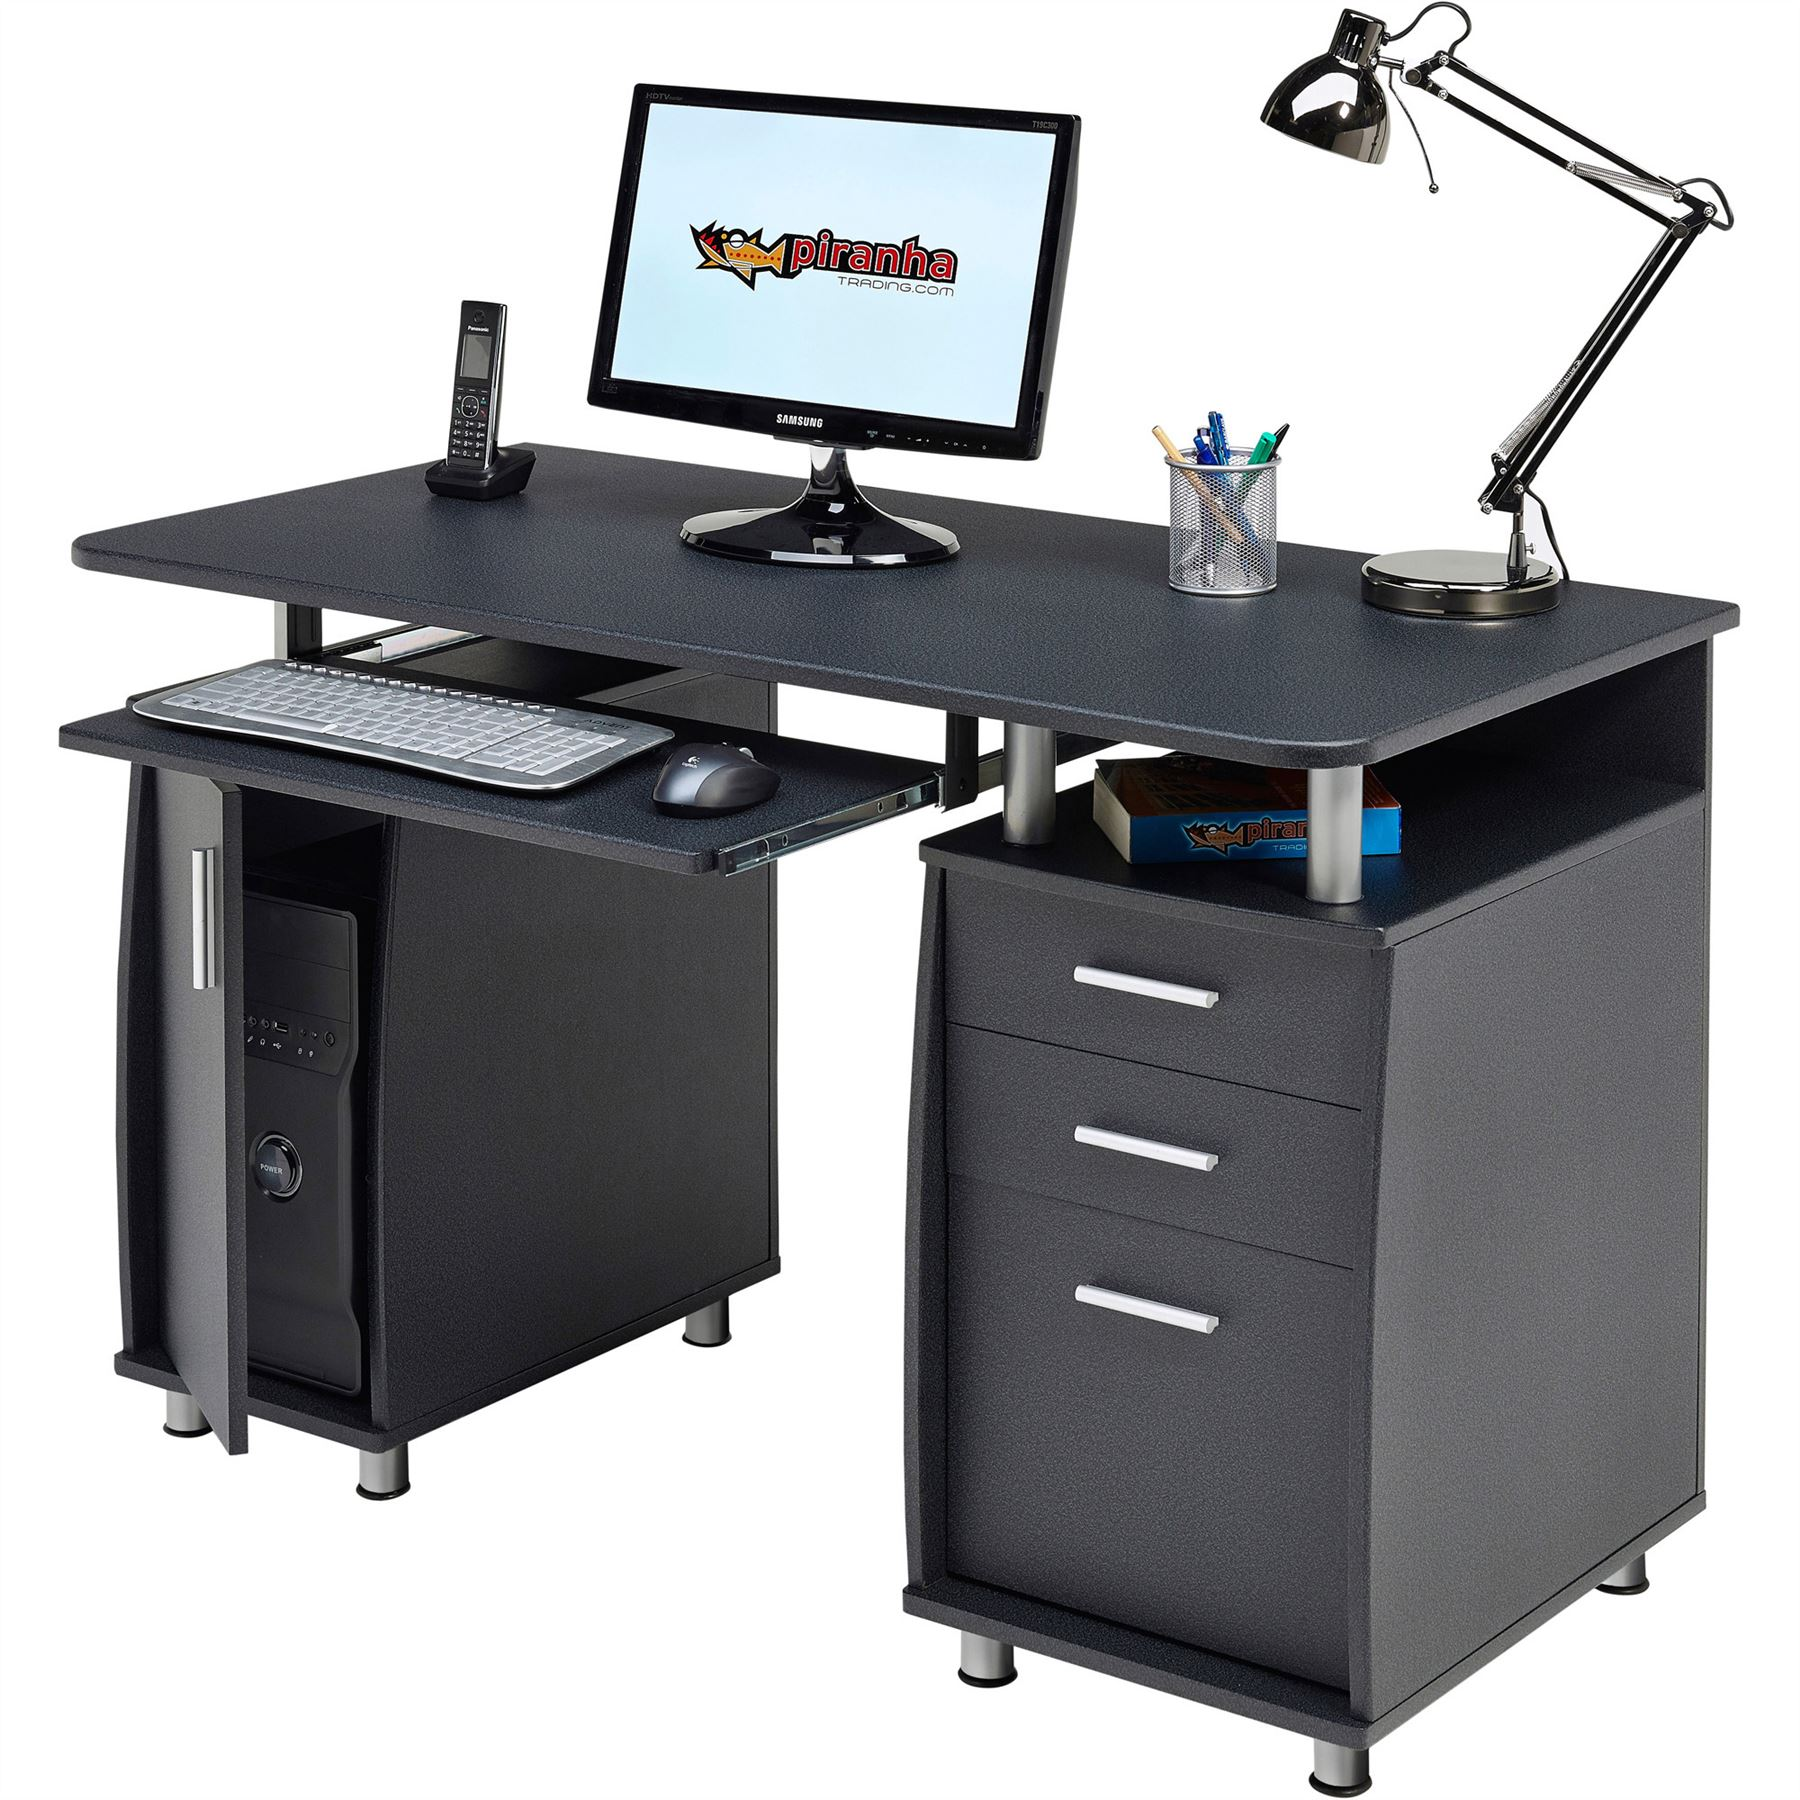 Computer Desk with Storage & A4 Filing Drawer Home Office - Piranha Emperor PC 2 | eBay